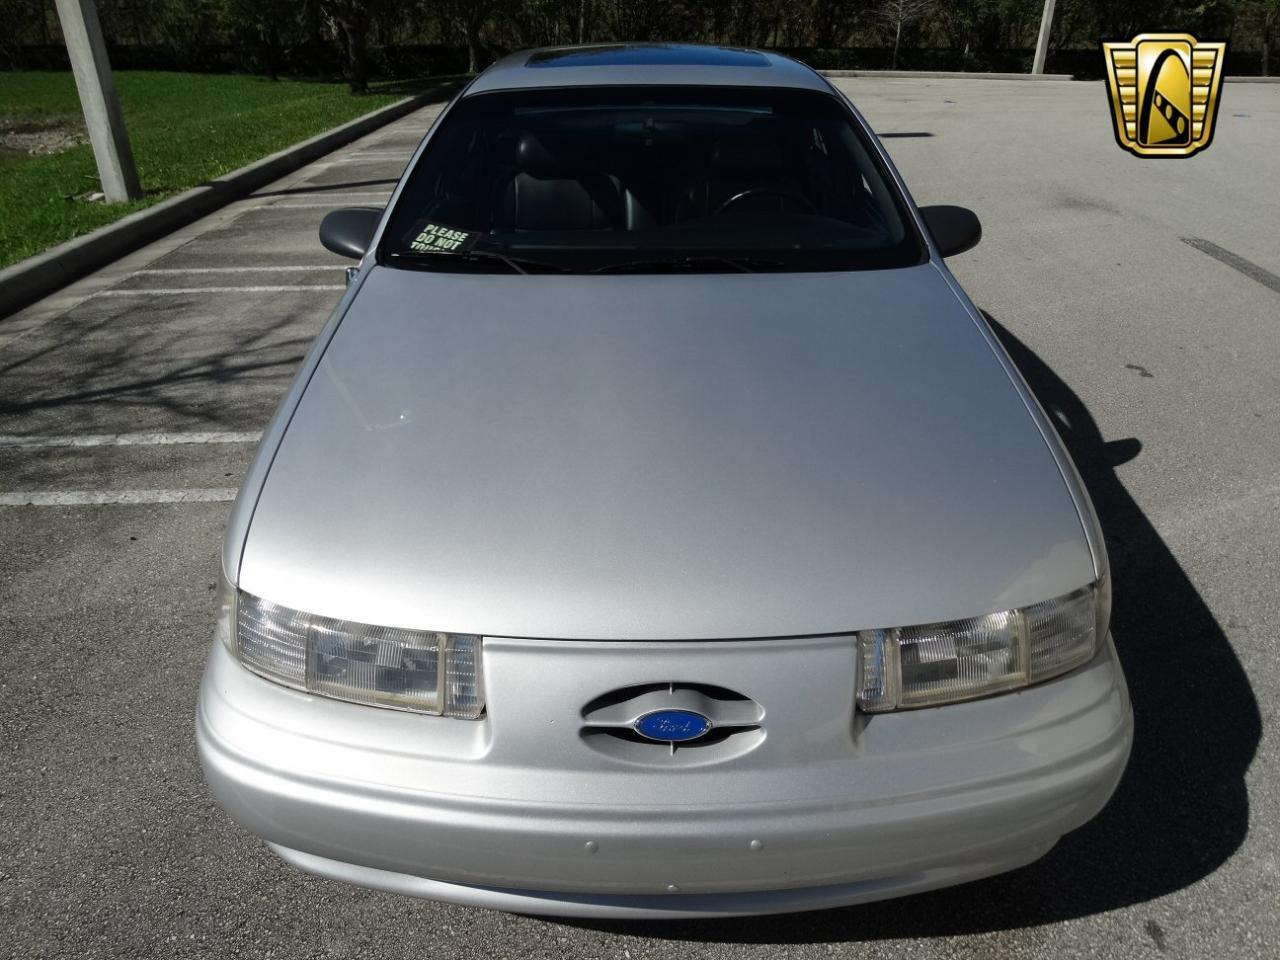 Large Picture of 1993 Ford Taurus located in Coral Springs Florida - $9,995.00 - KEXL